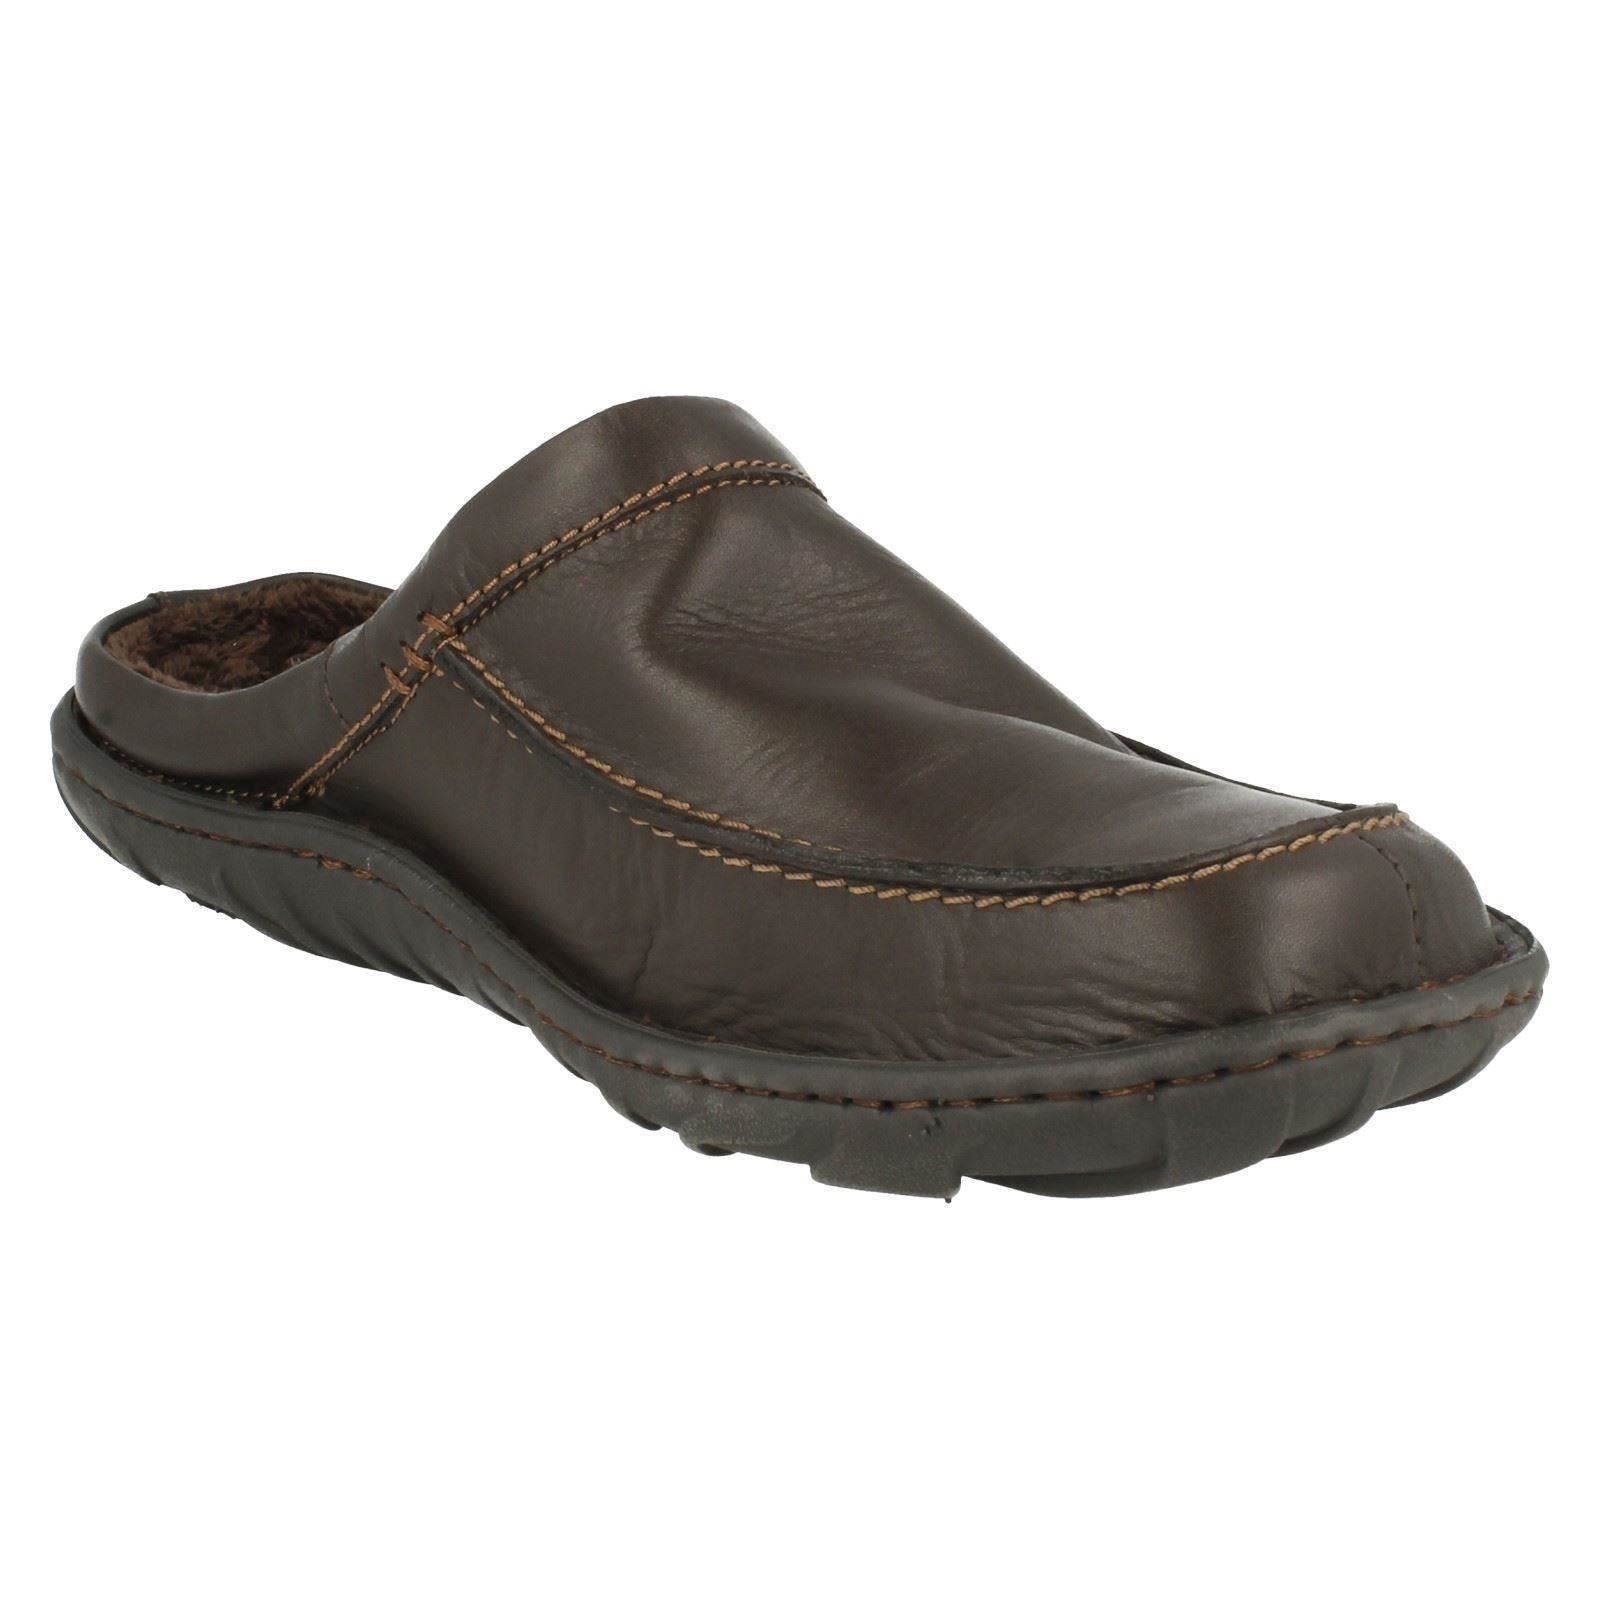 Mens Clarks Leather Slip On Mule Slippers - Kite Vasa